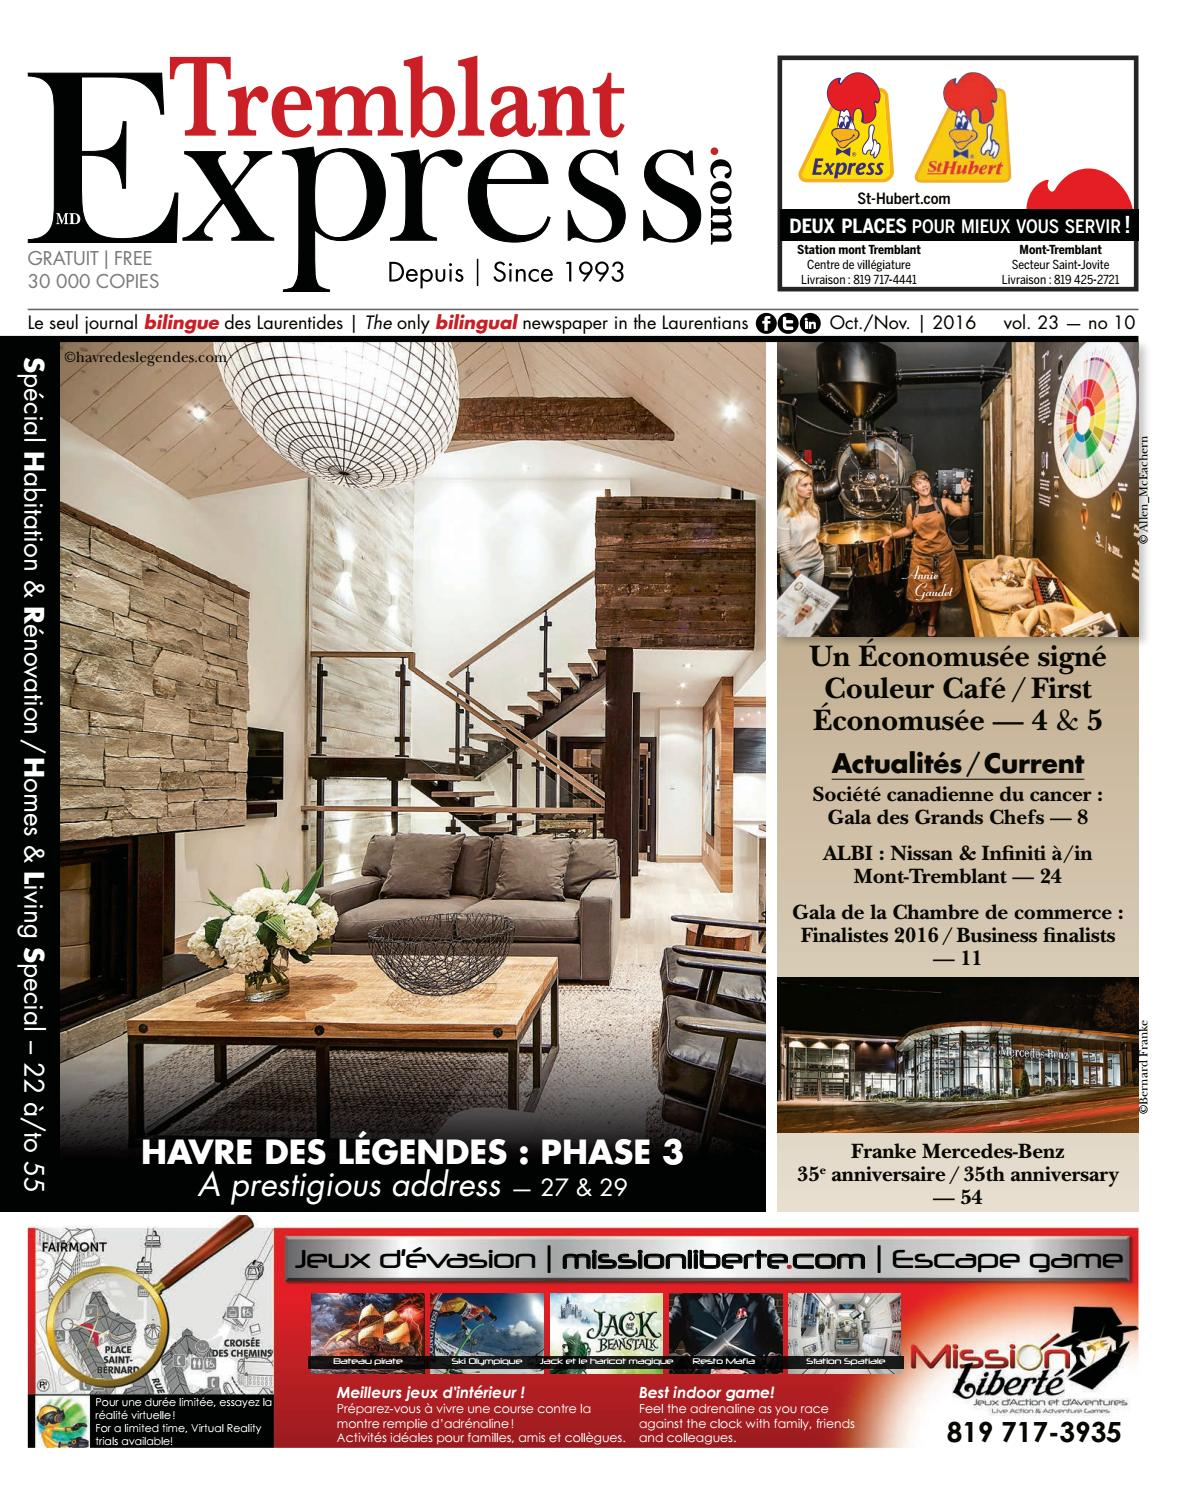 2016 10 tremblant express by Tremblant Express - issuu d0fcd4b3066